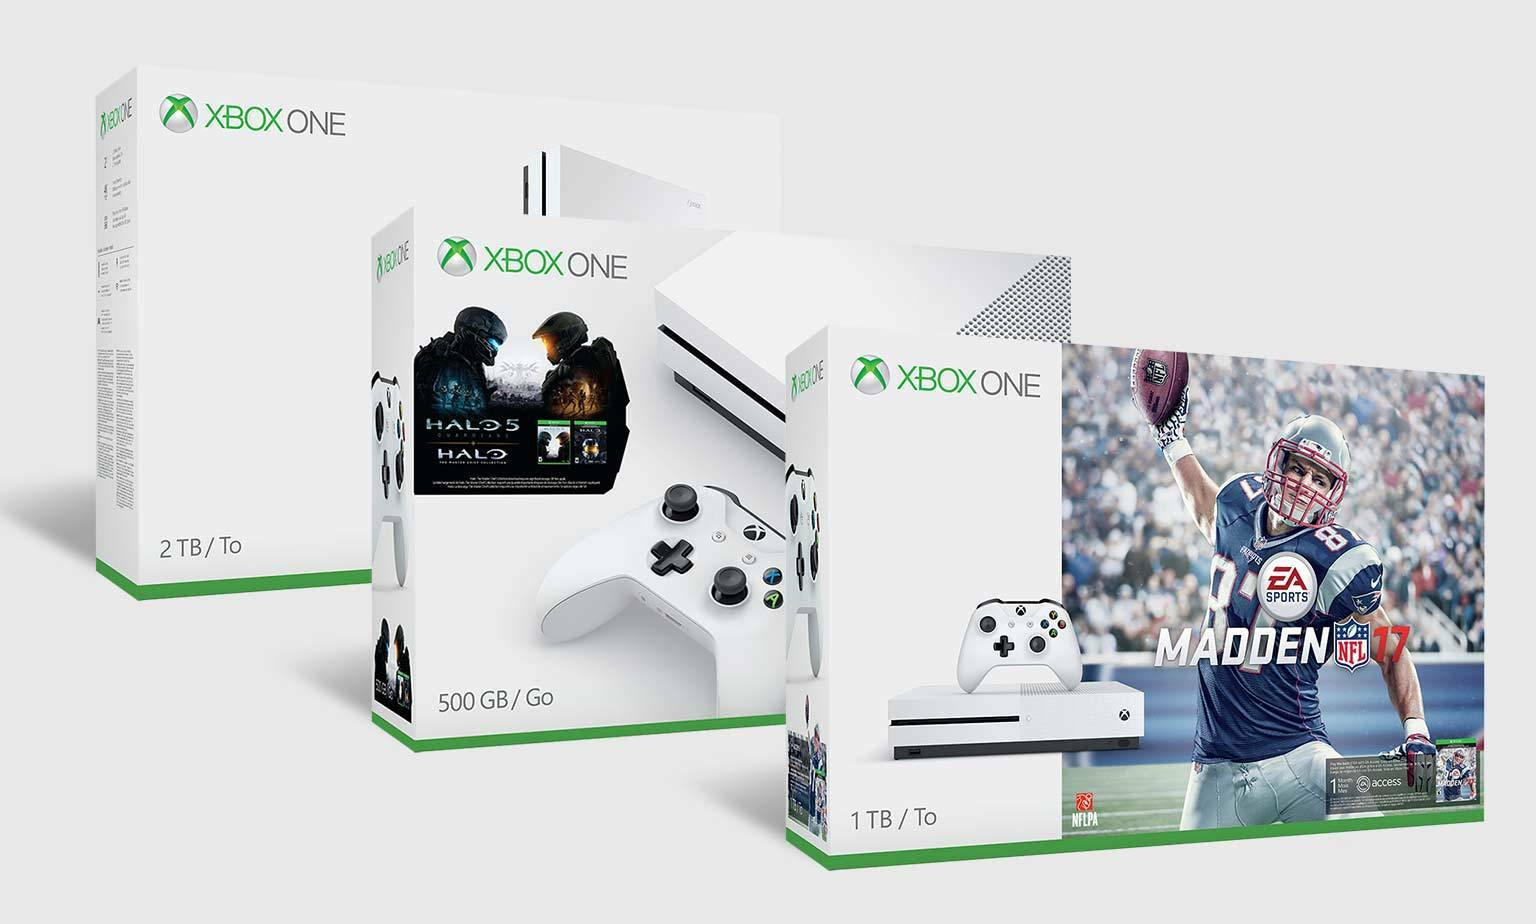 Xbox One S - Score the latest console from Microsoft